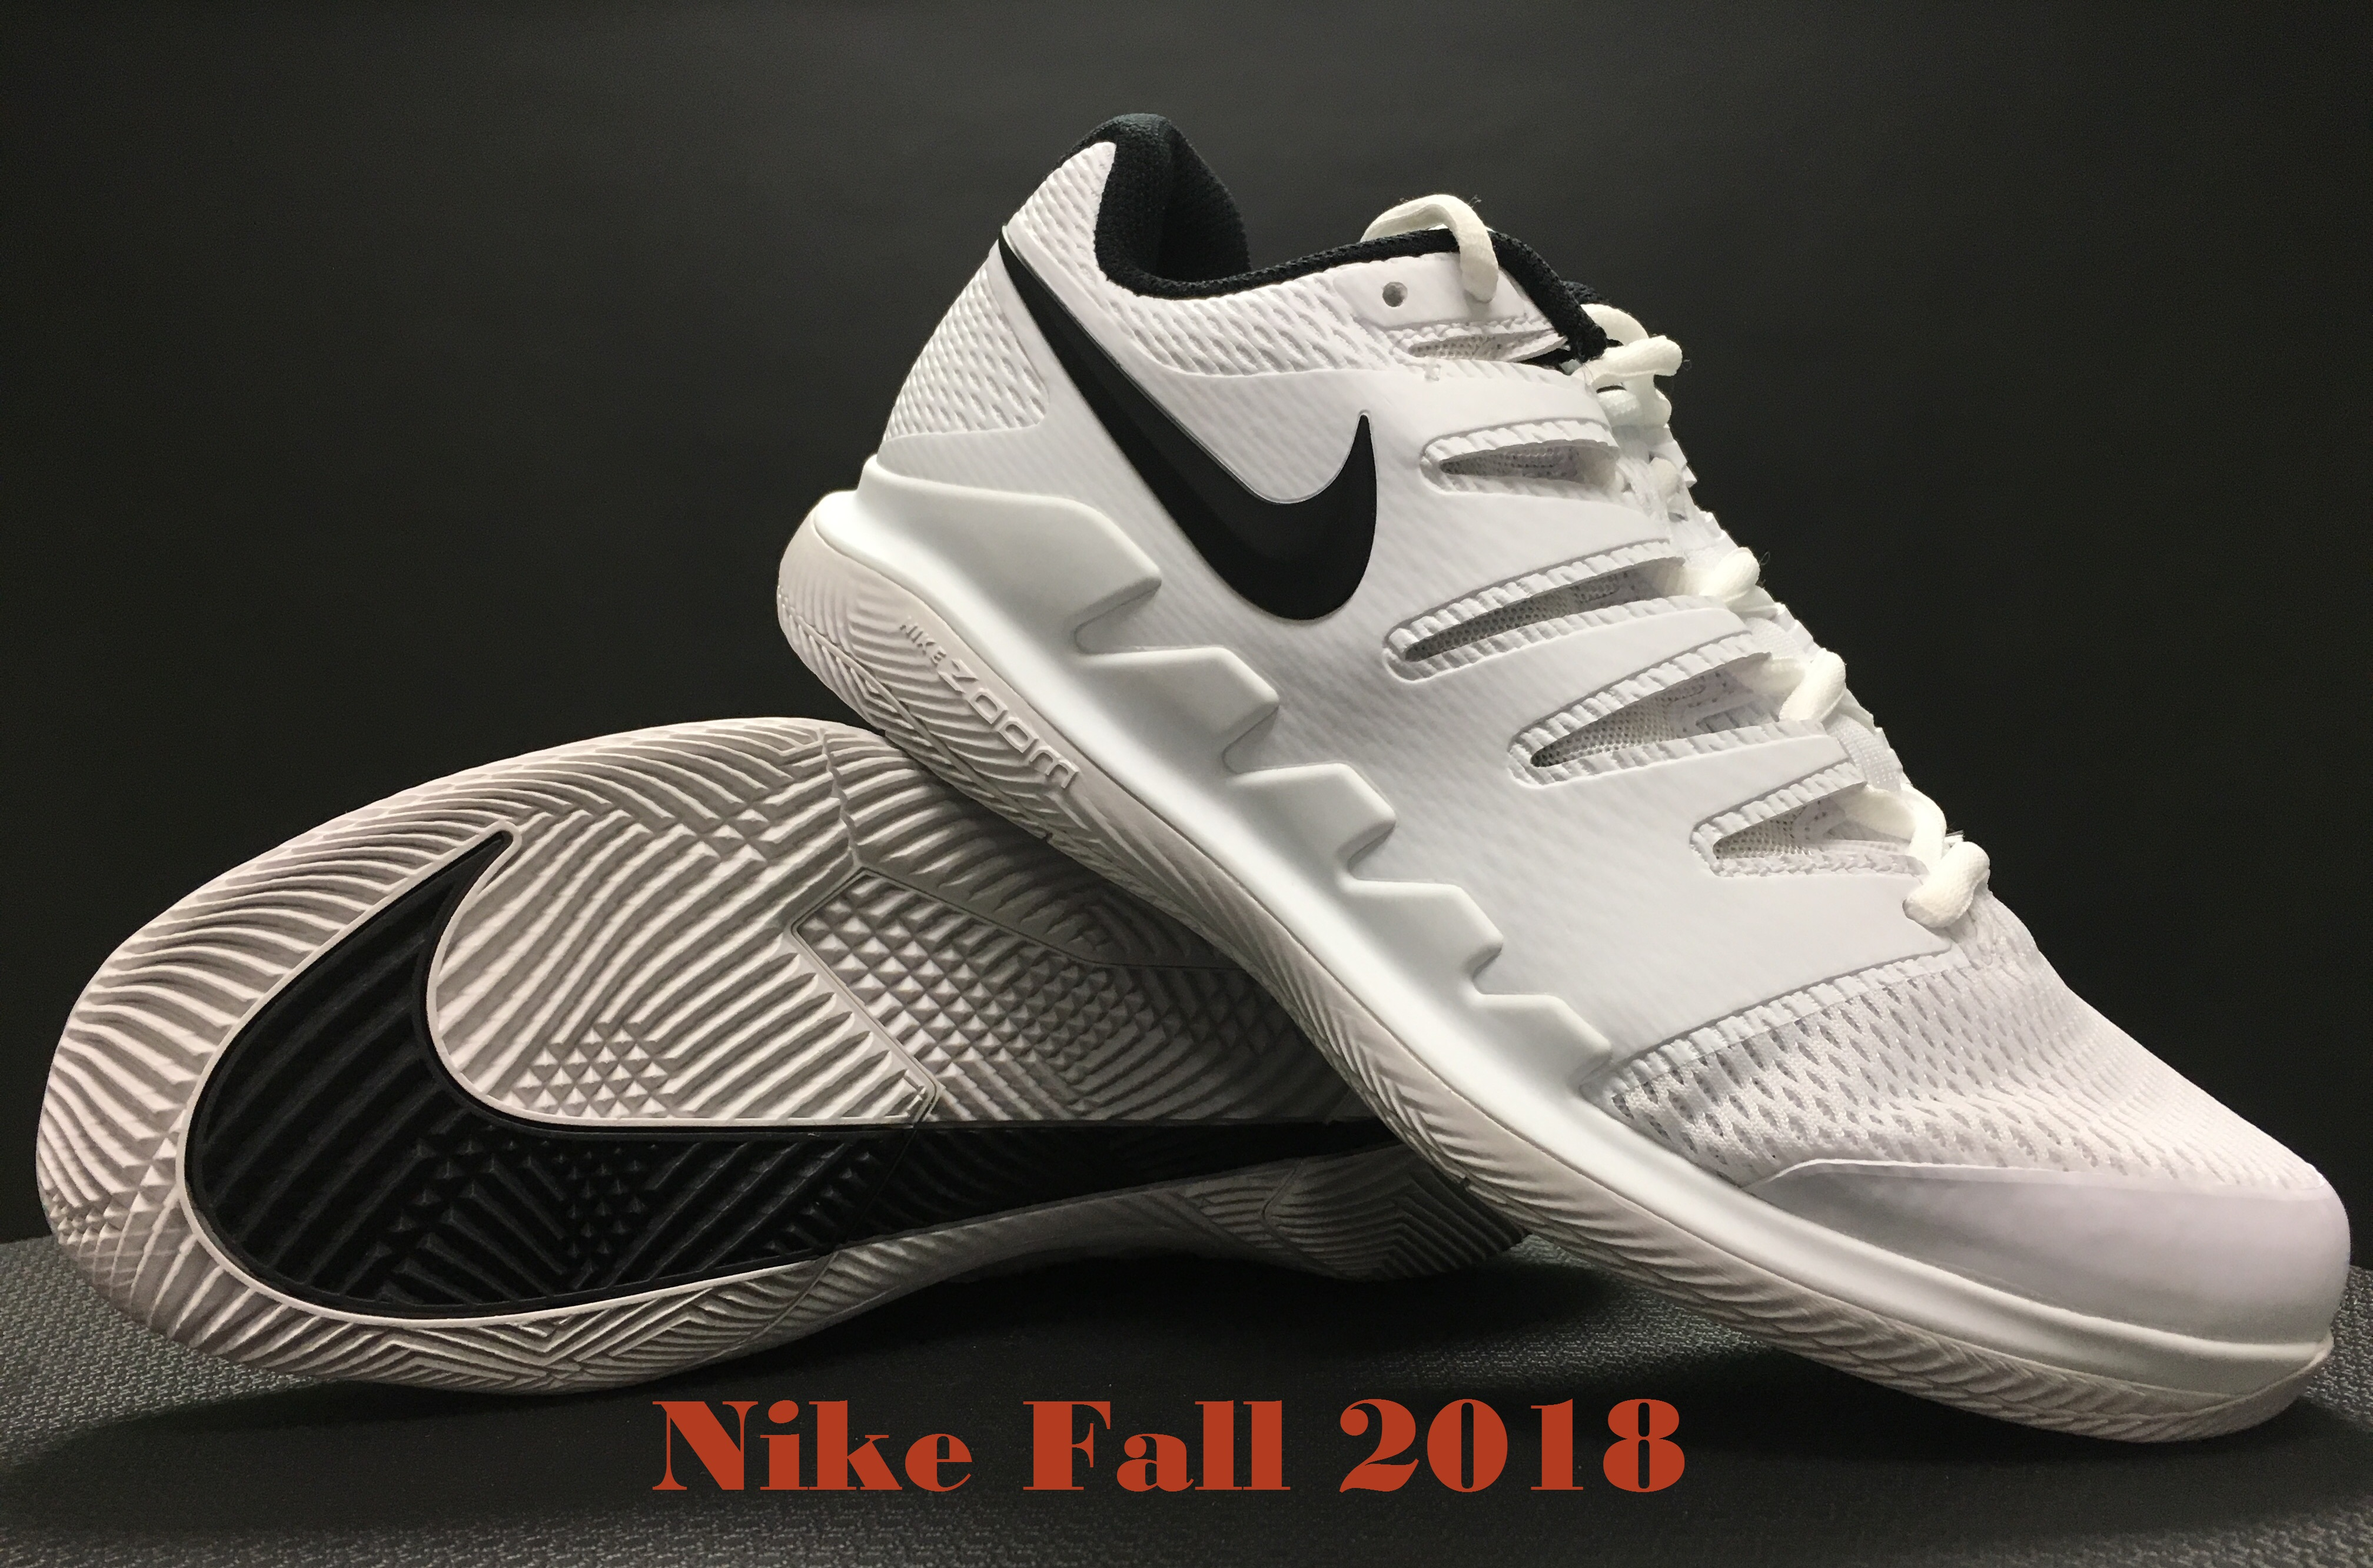 Nike Fall 2018 Tennis Shoes May Feature More Colors Than